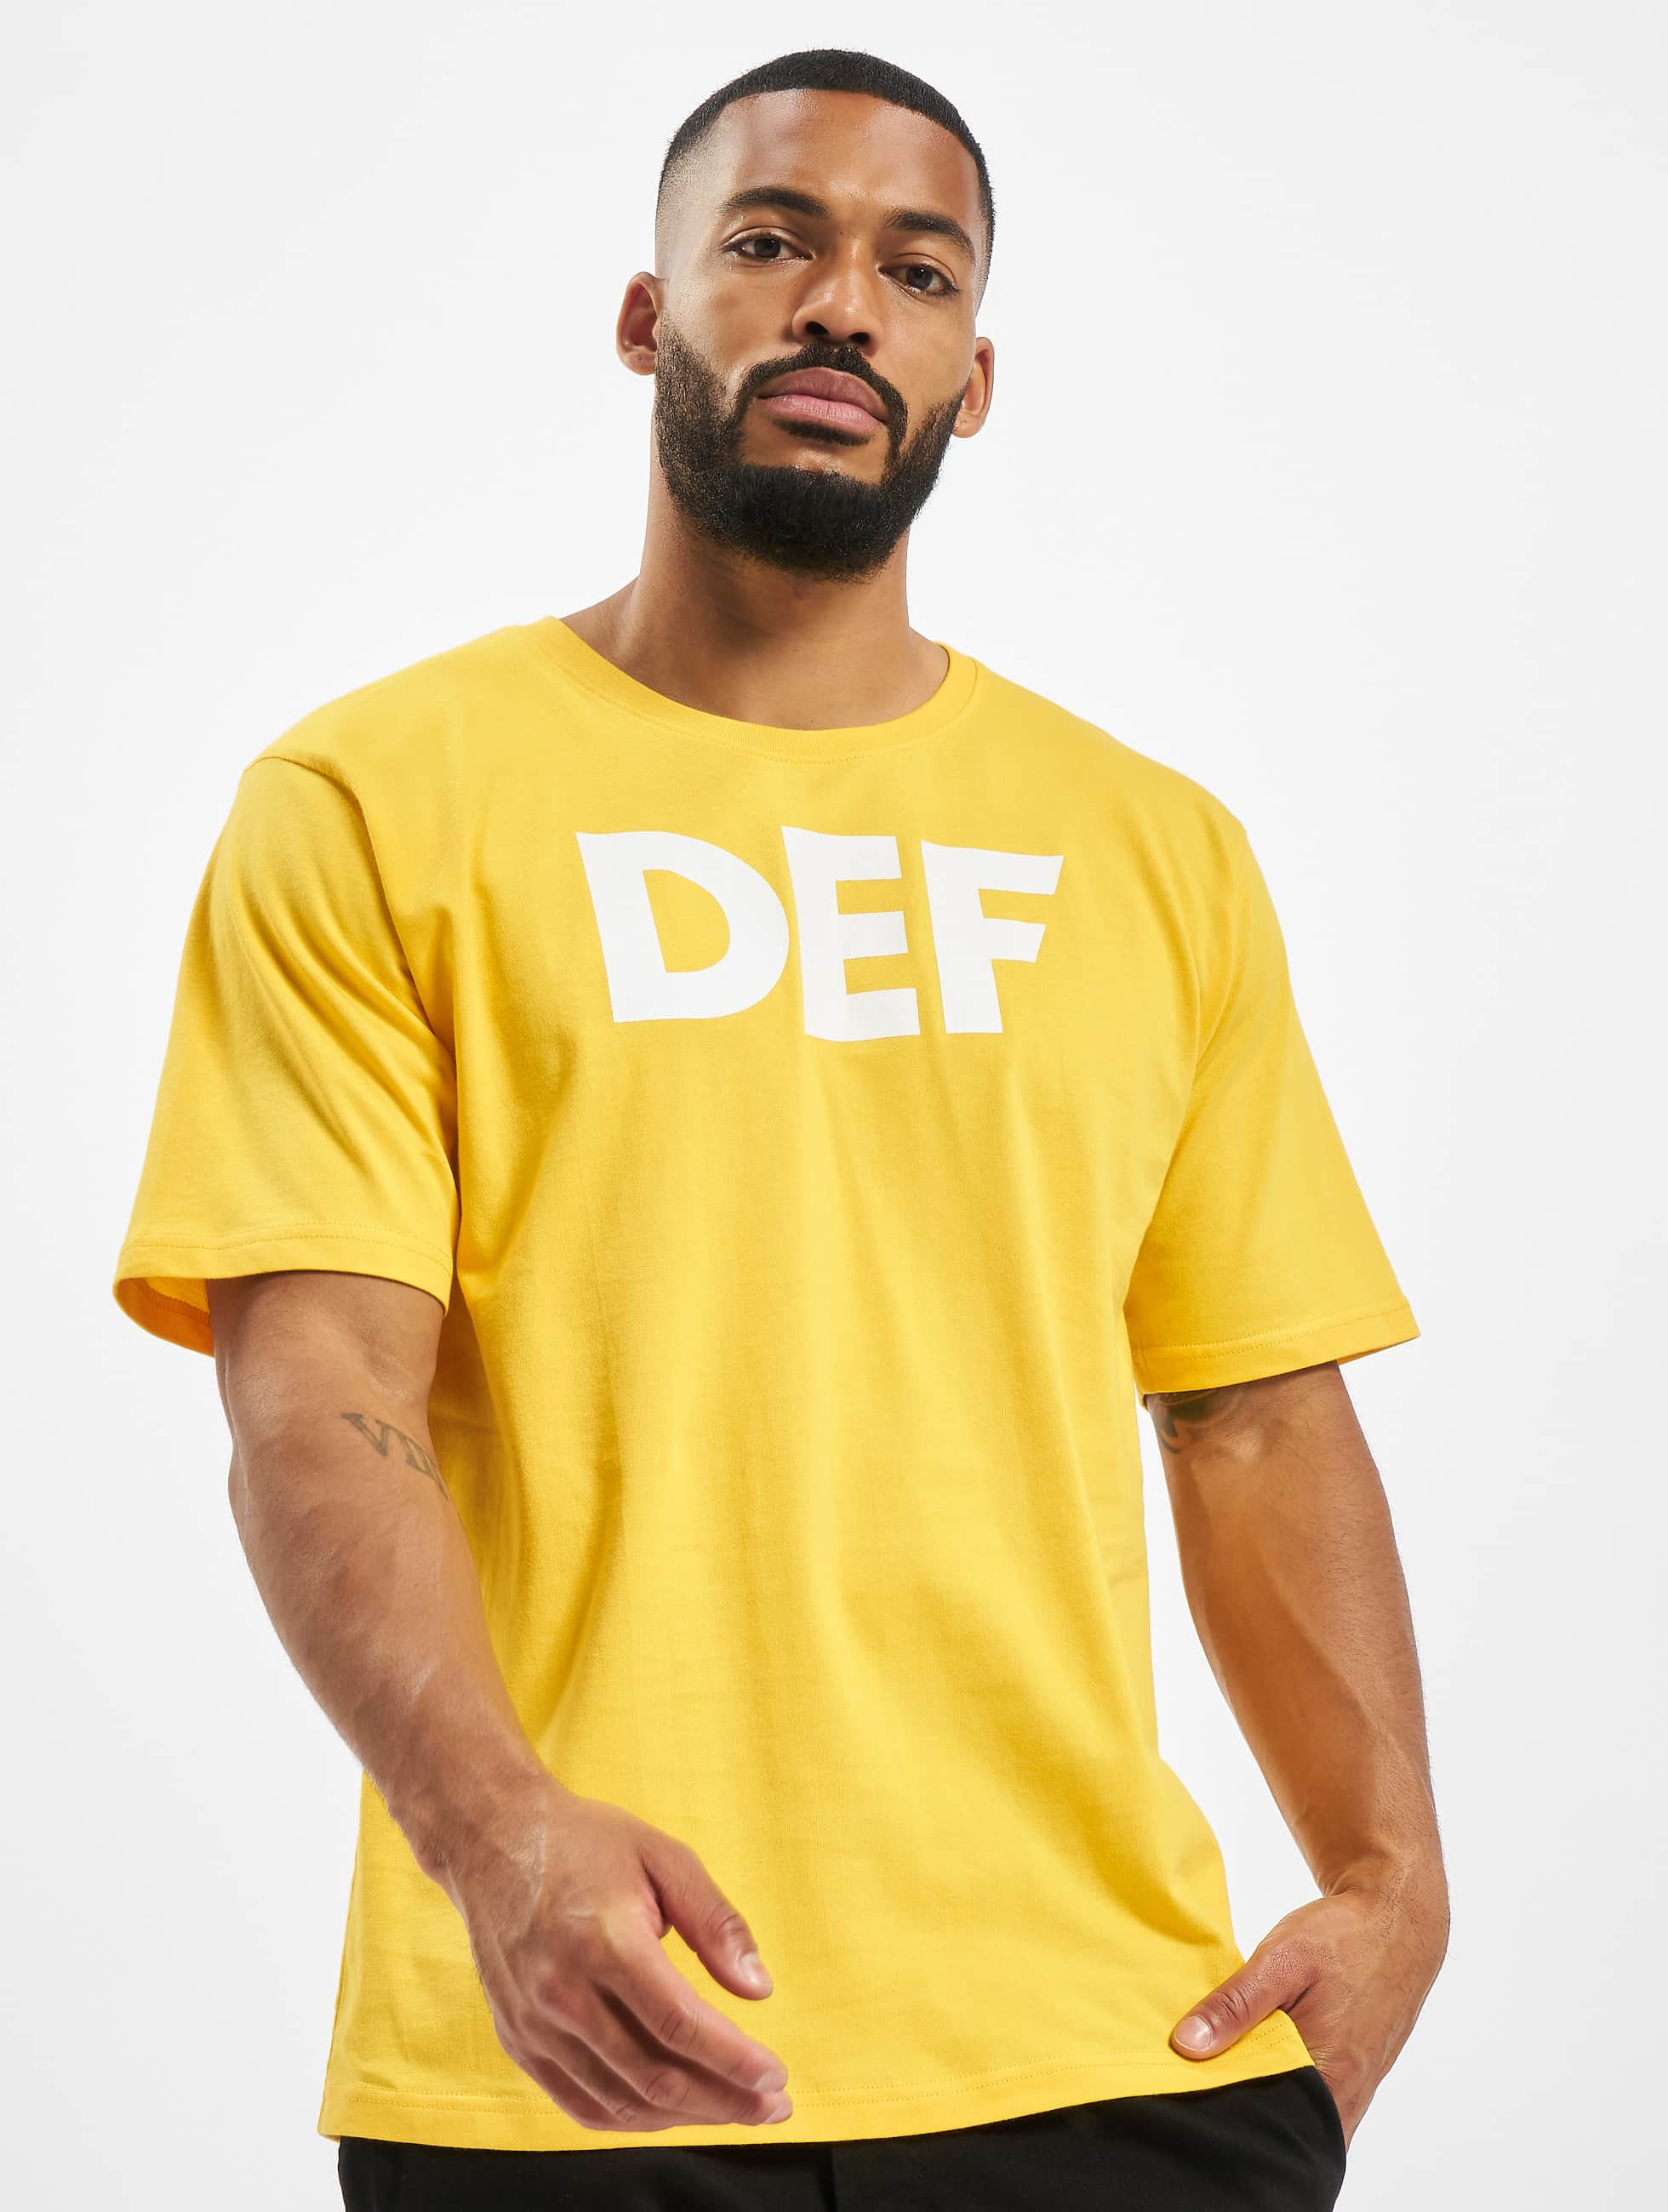 DEF / T-Shirt Her in yellow M